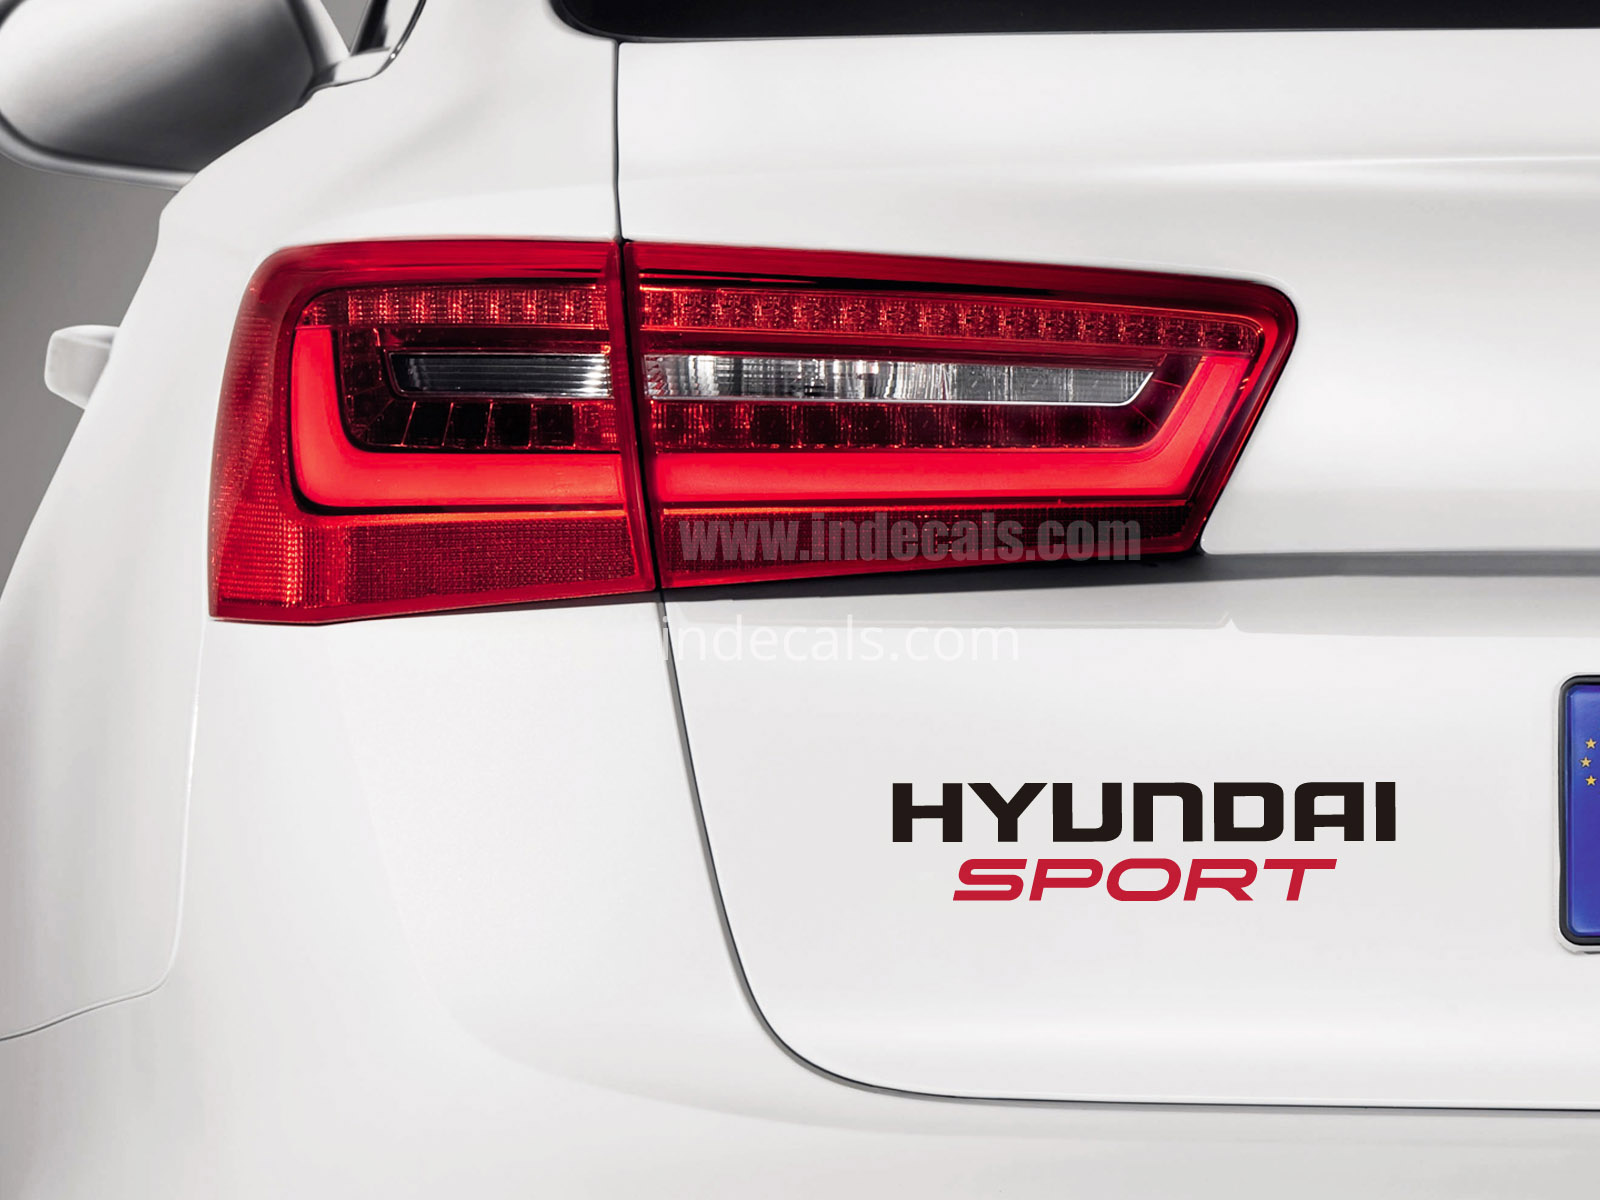 1 x Hyundai Sports Sticker for Trunk - Black & Red